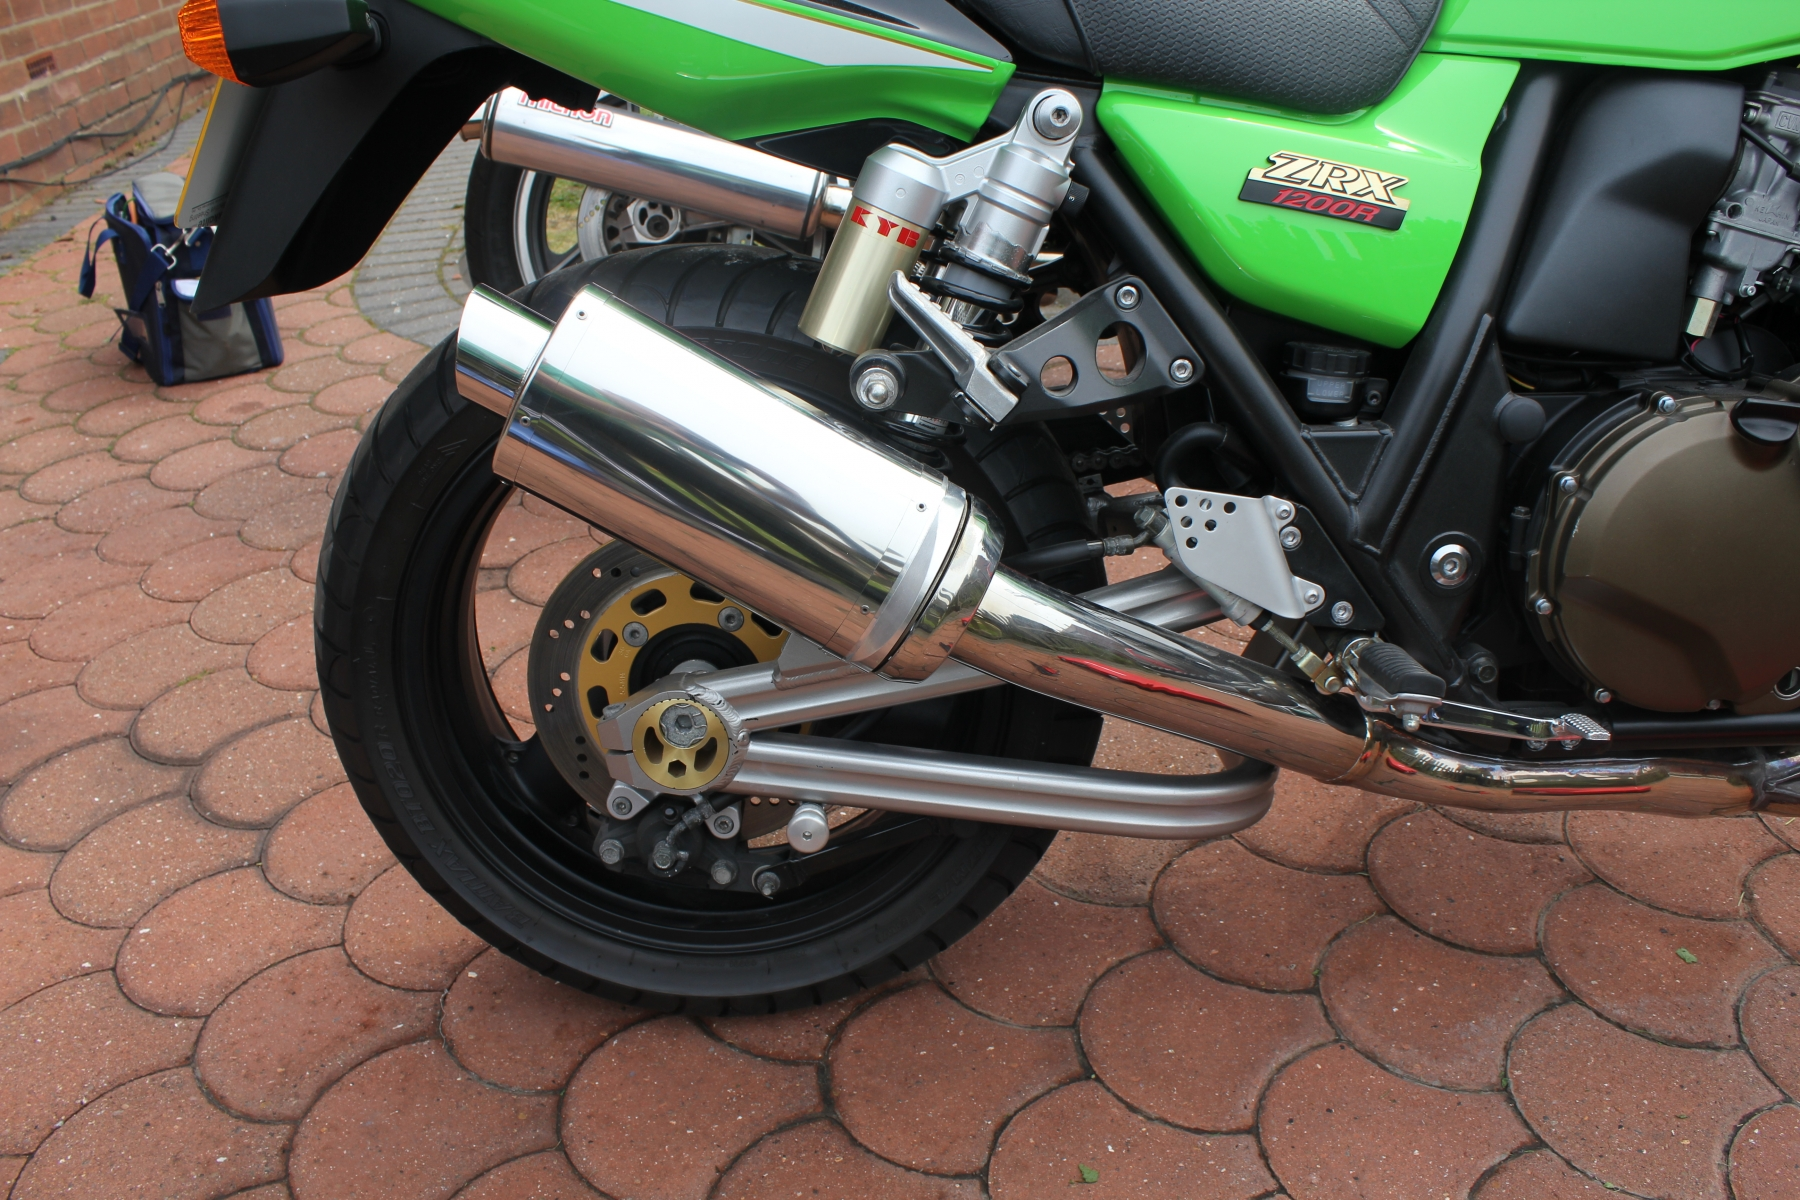 """Kawasaki ZRX1200 2001-2007<p>A16 Stubby Stainless Exhaust with Polished Slashcut Outlet</p><br><a href=""""https://a16roadnracesupplies.co.uk/product/a16-kawasaki-exhausts/"""">Click here to Spec your A16 Kawasaki Exhaust now!</a>"""